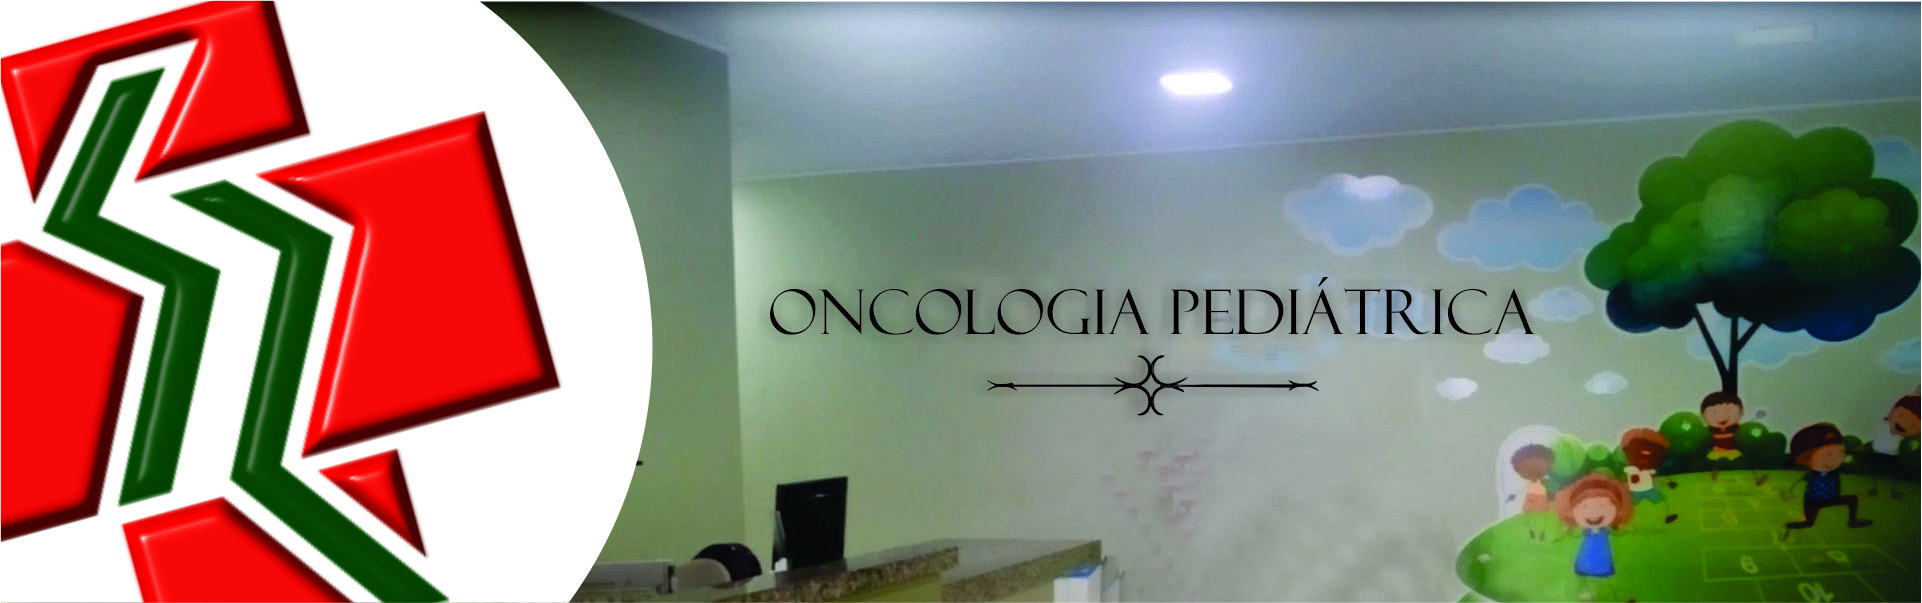 Banner-oncologia